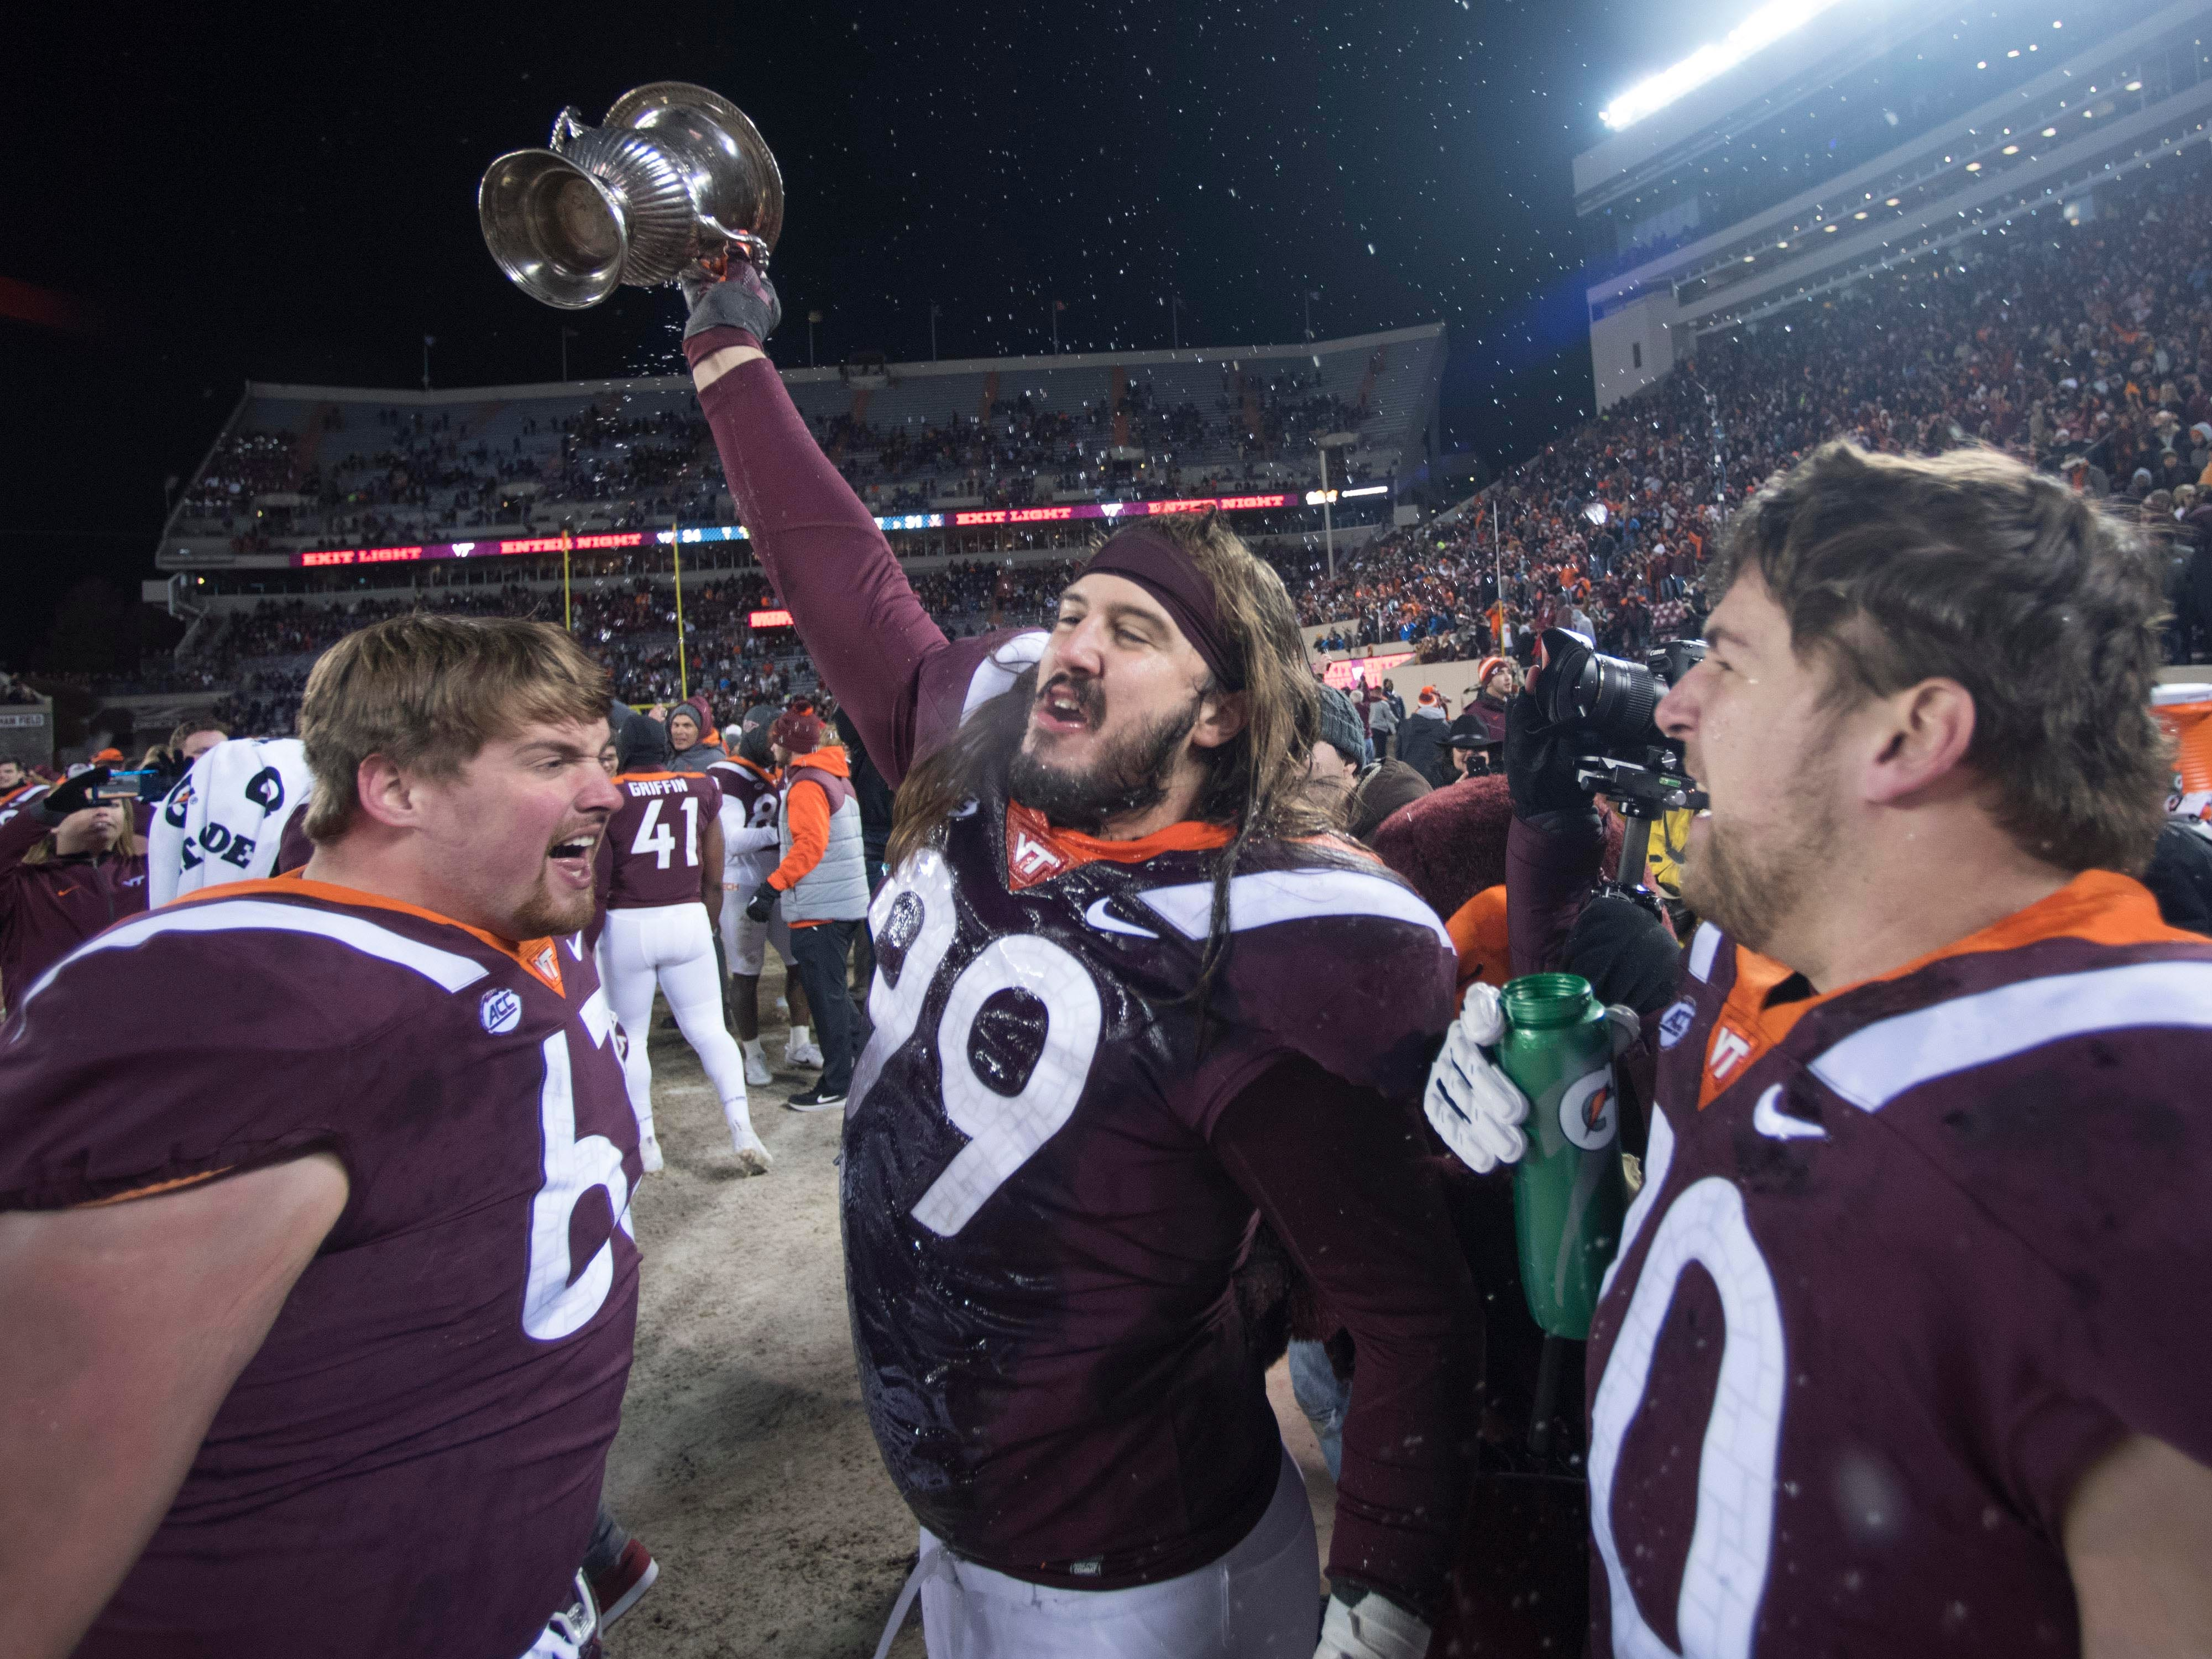 Virginia Tech defensive lineman Vinny Mihota raises the Commonwealth Cup along side his teammates after defeating rival Virginia in overtime.